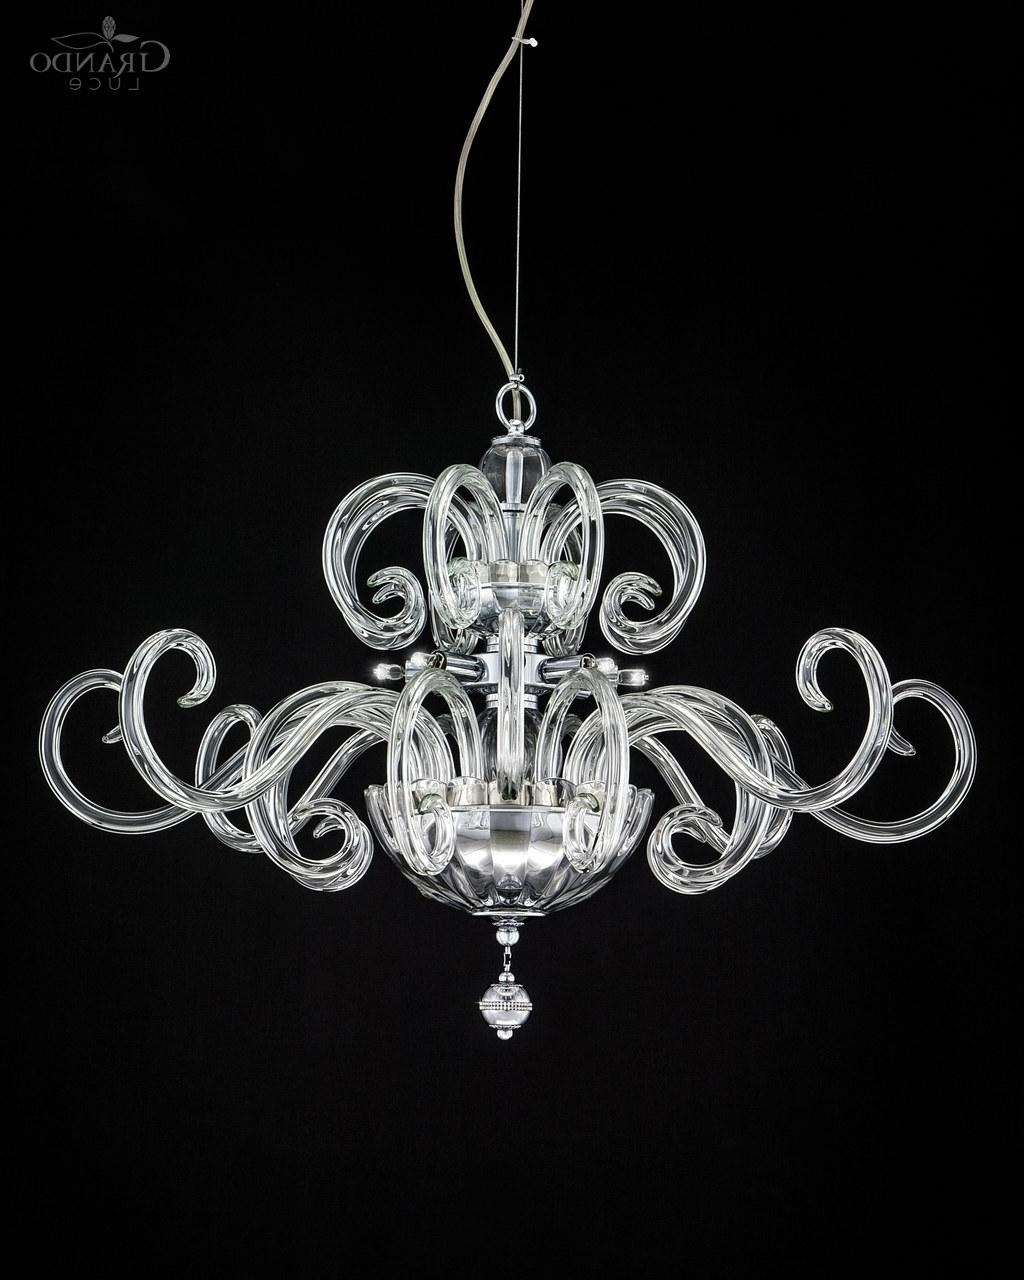 Well Known 119/sm Chrome Modern Crystal Chandelier With Swarovski Elements With Chrome Crystal Chandelier (View 13 of 20)